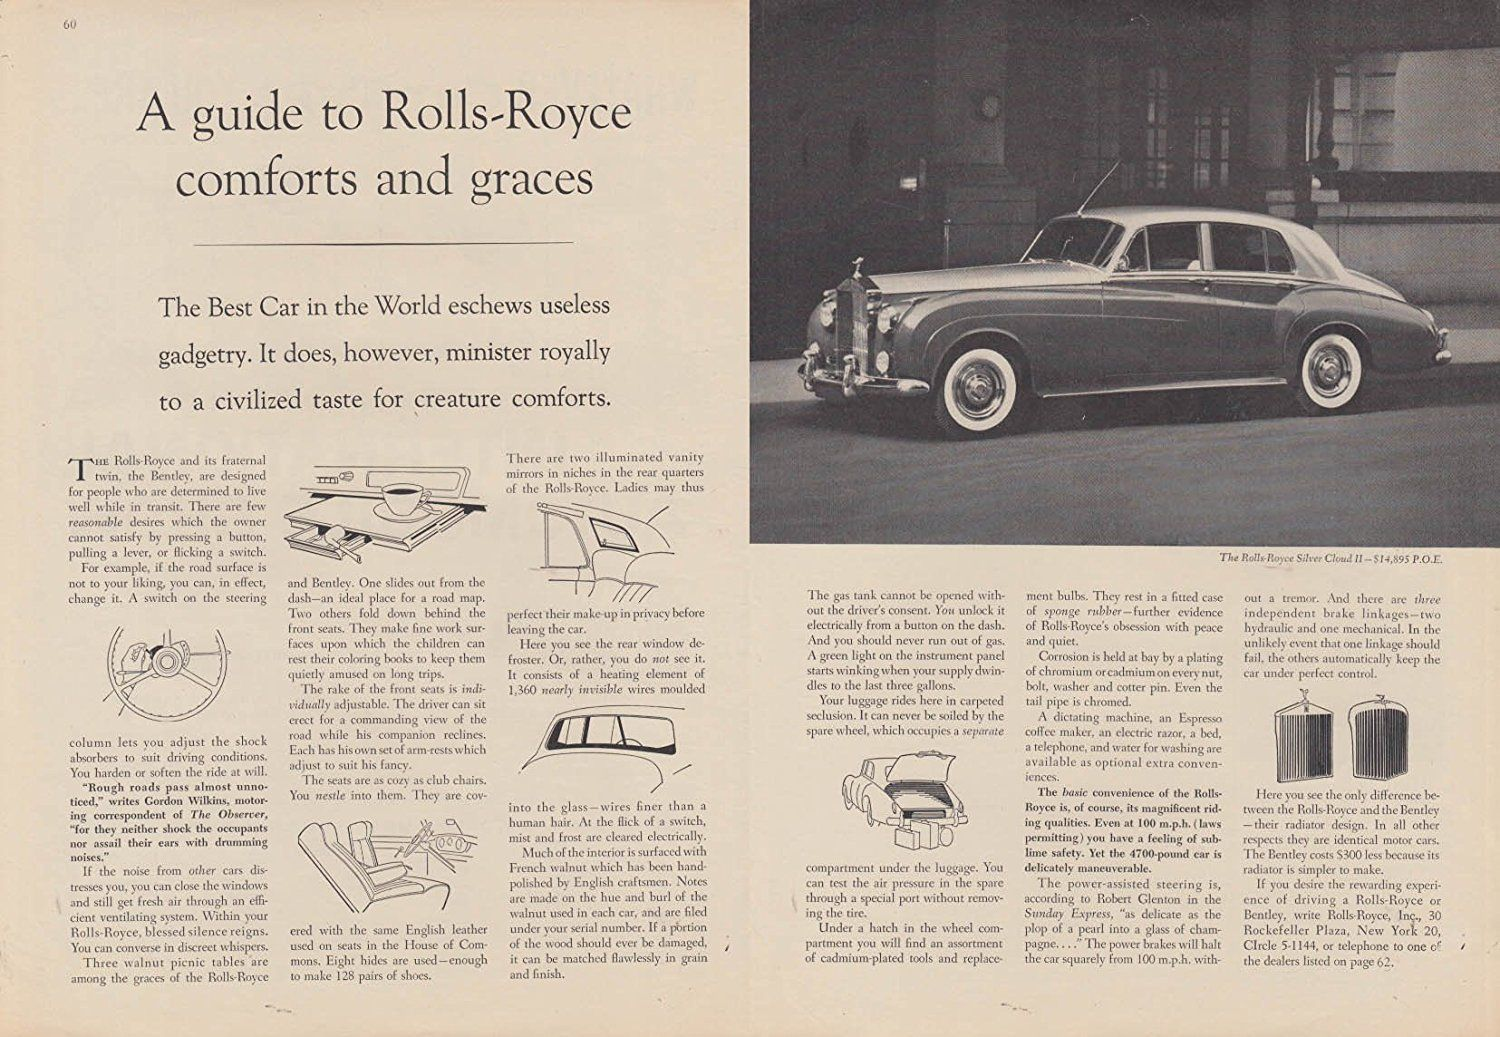 Guide to Rolls-Royce Silver Cloud II comforts and graces ad